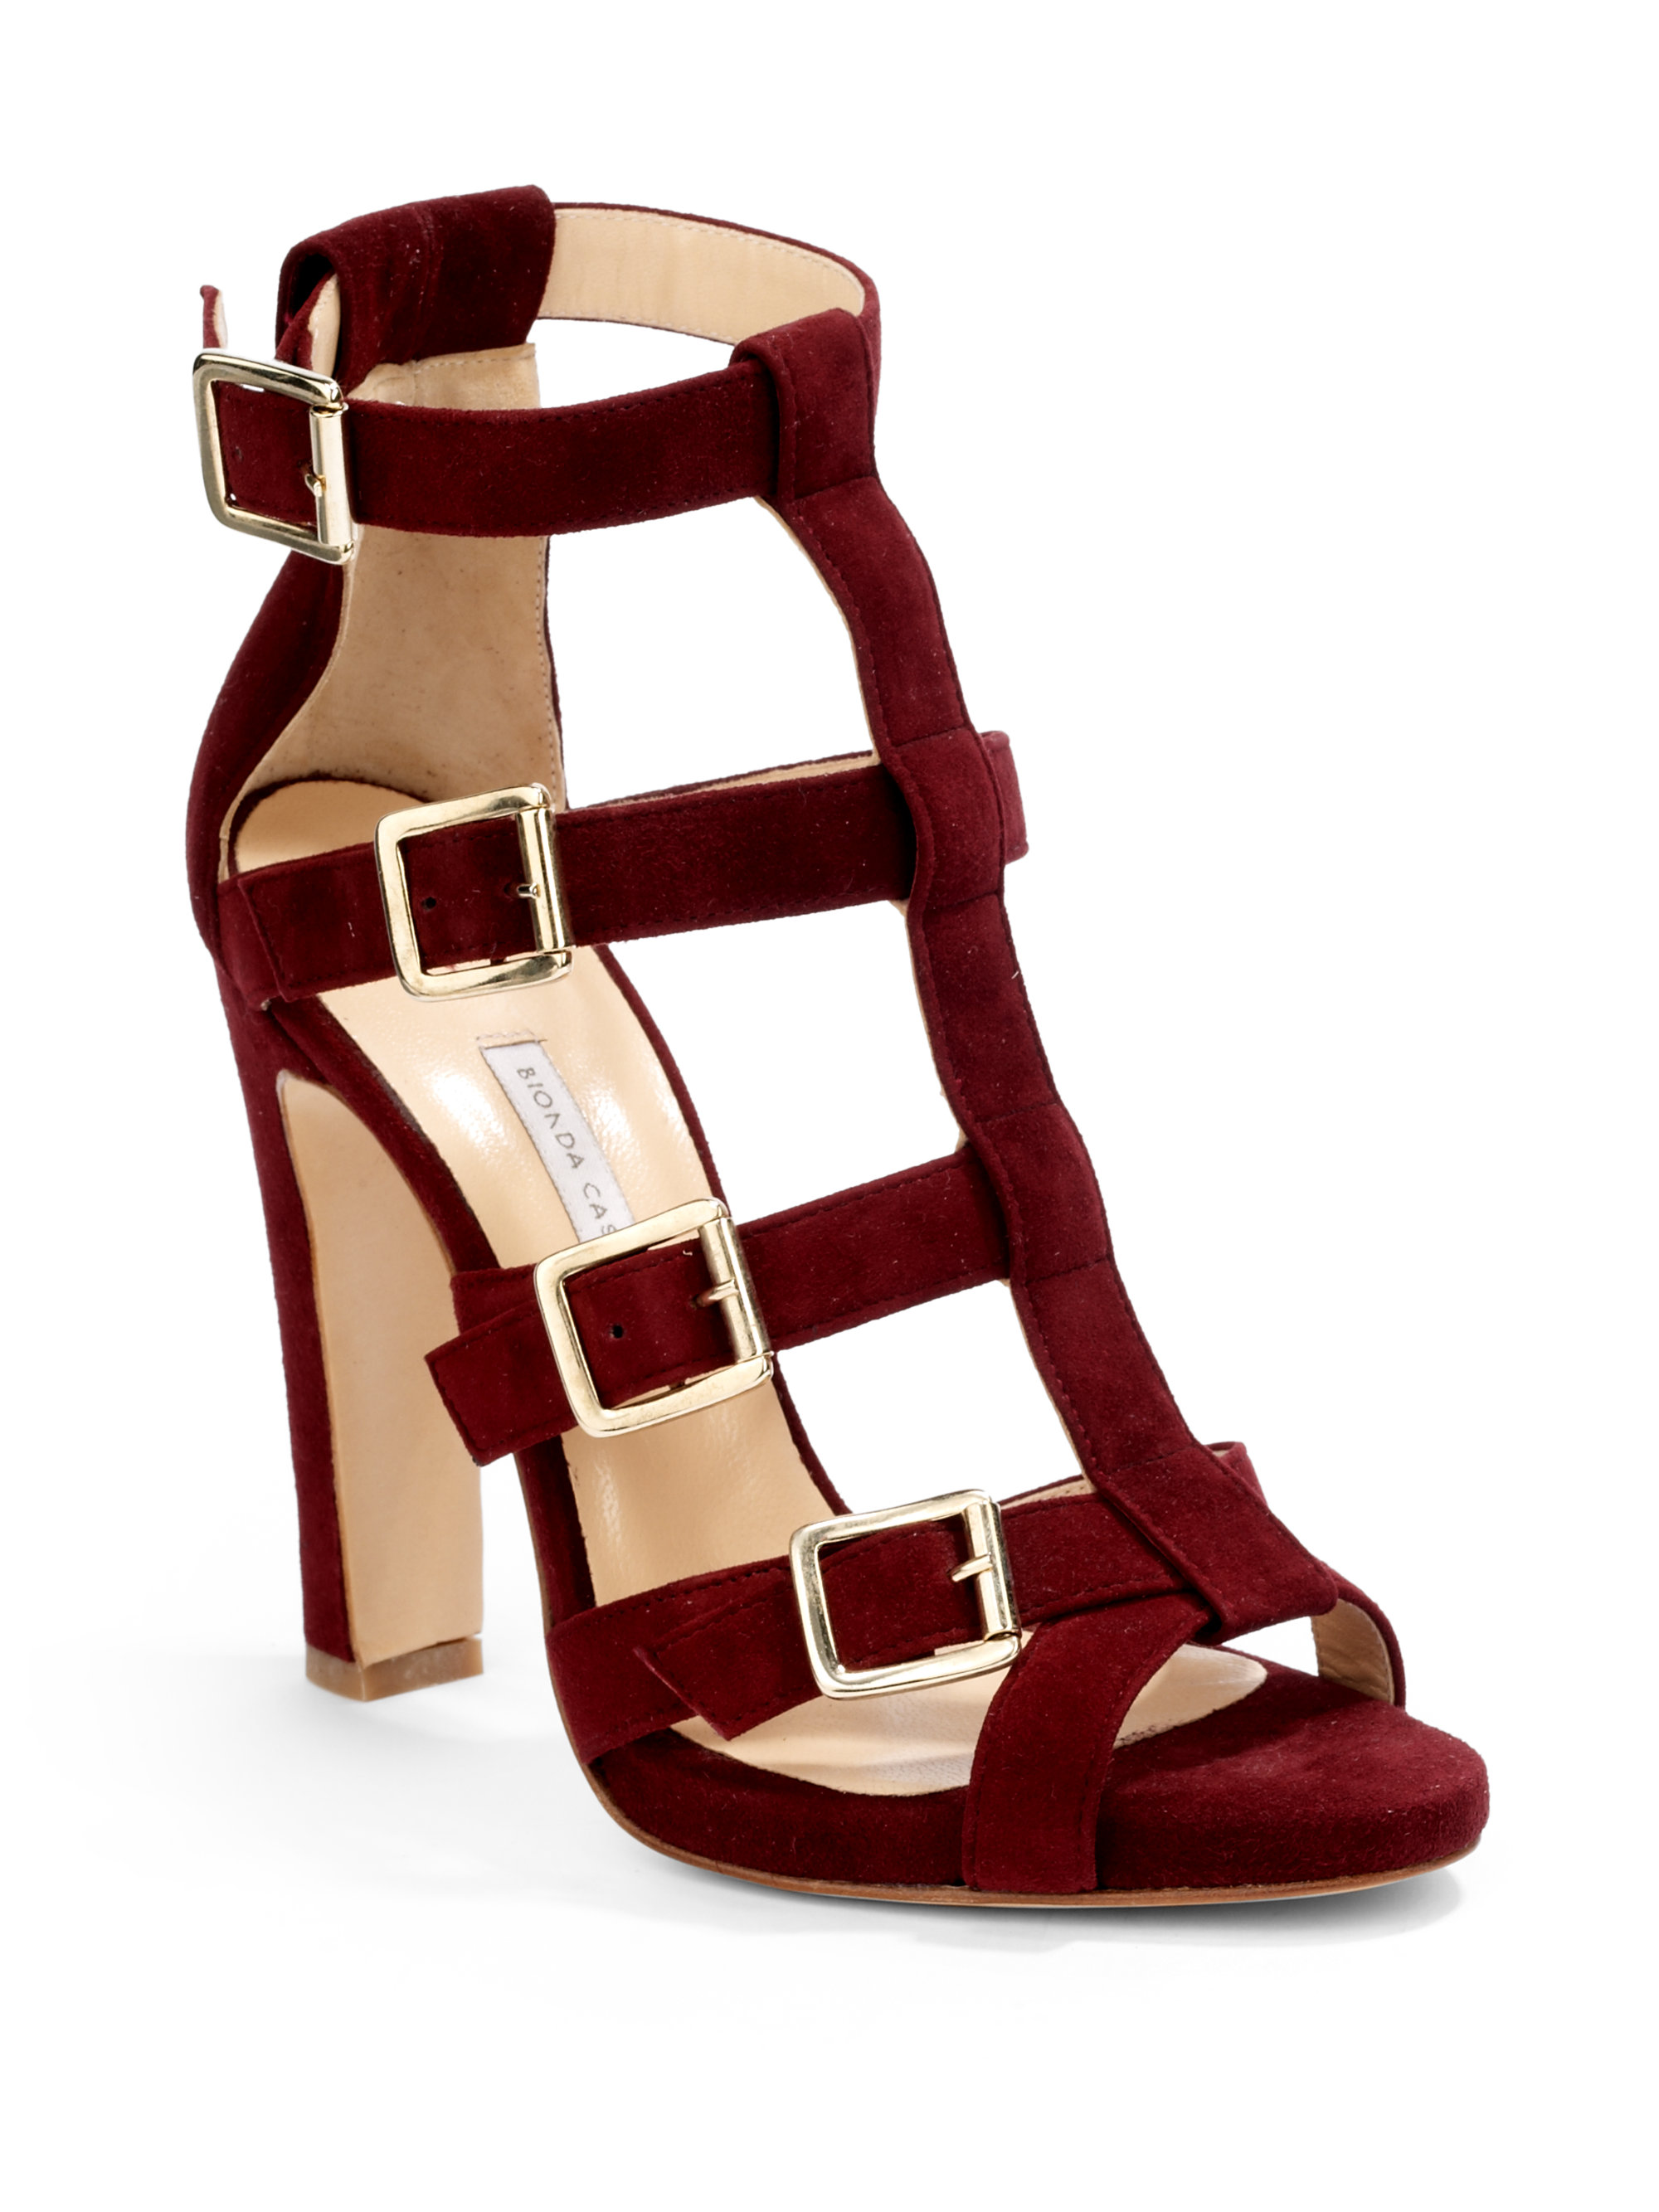 Lyst Bionda Castana Olivia Strappy Sandals In Red